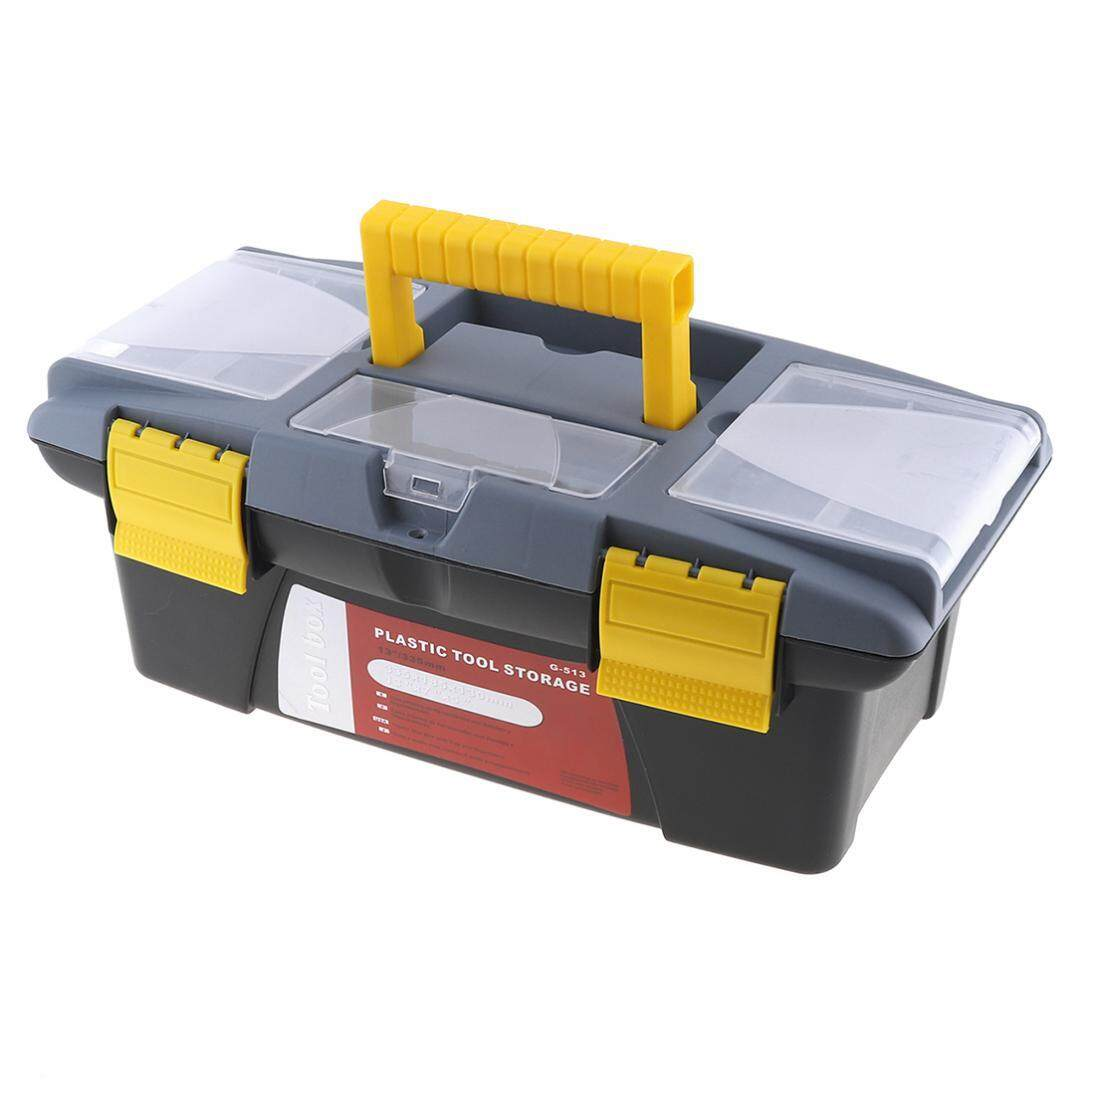 Medium Plastic Hardware Tool box for Home or Outdoor Finishing Debris with Storage Box and Black - intl